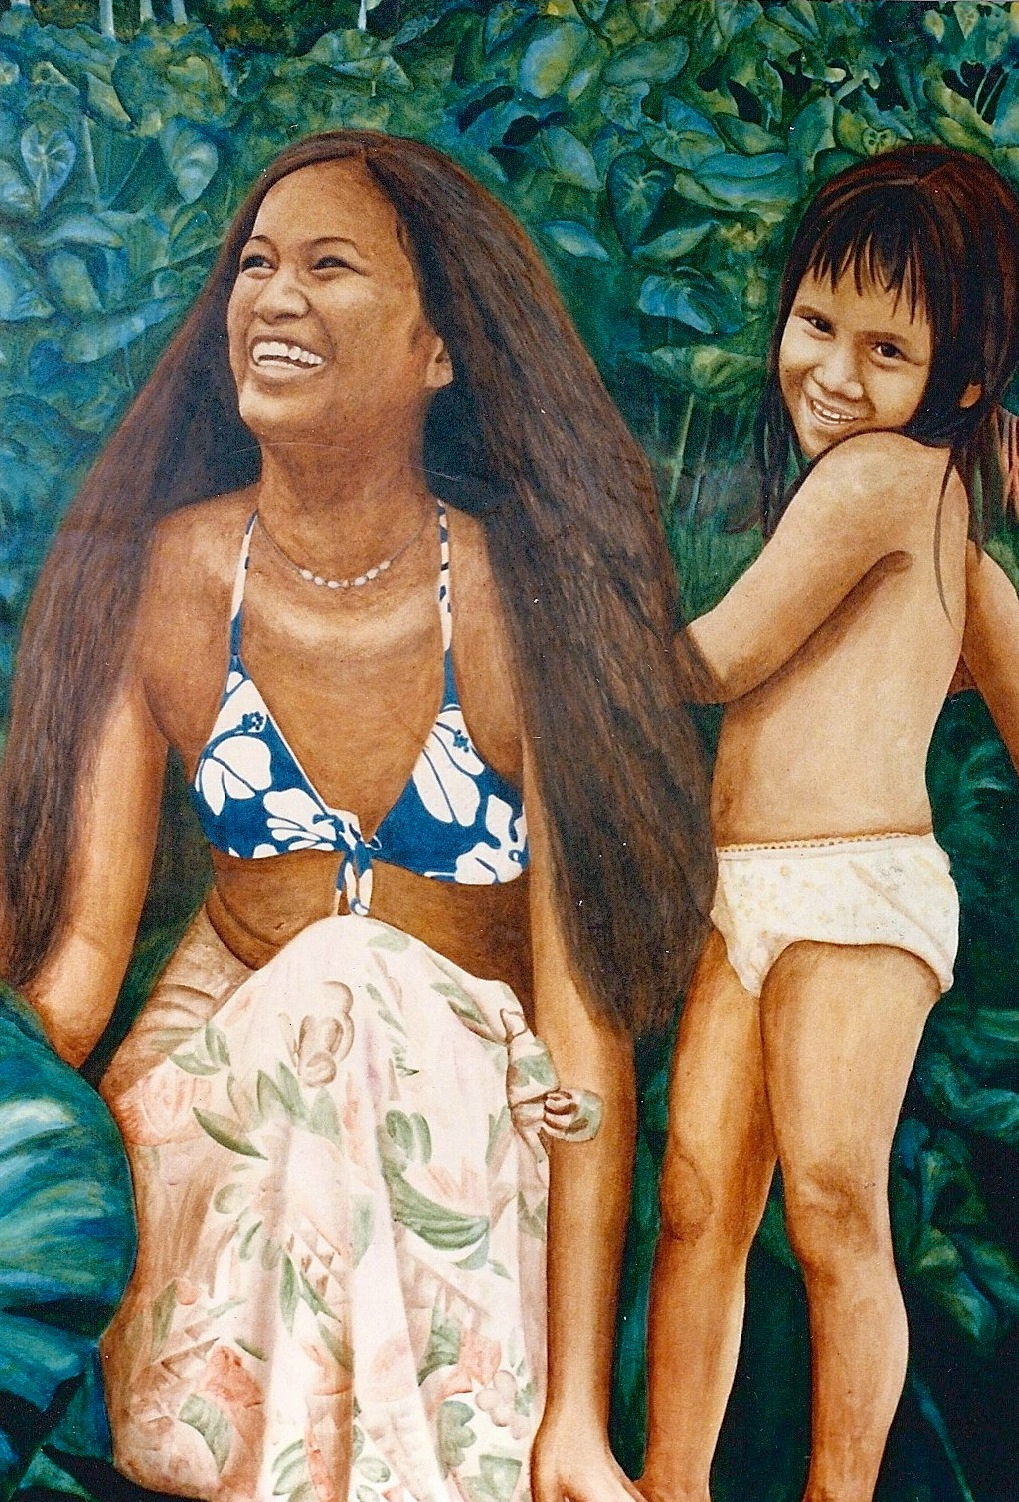 Calley's dear friend and neighbor, Louise Kaiulani Sausen and her daughter Lehua posed for the auana (modern) side of the mural.  It was Kaiulani that introduced Calley to her kumu, Braddah Frank Hewett.